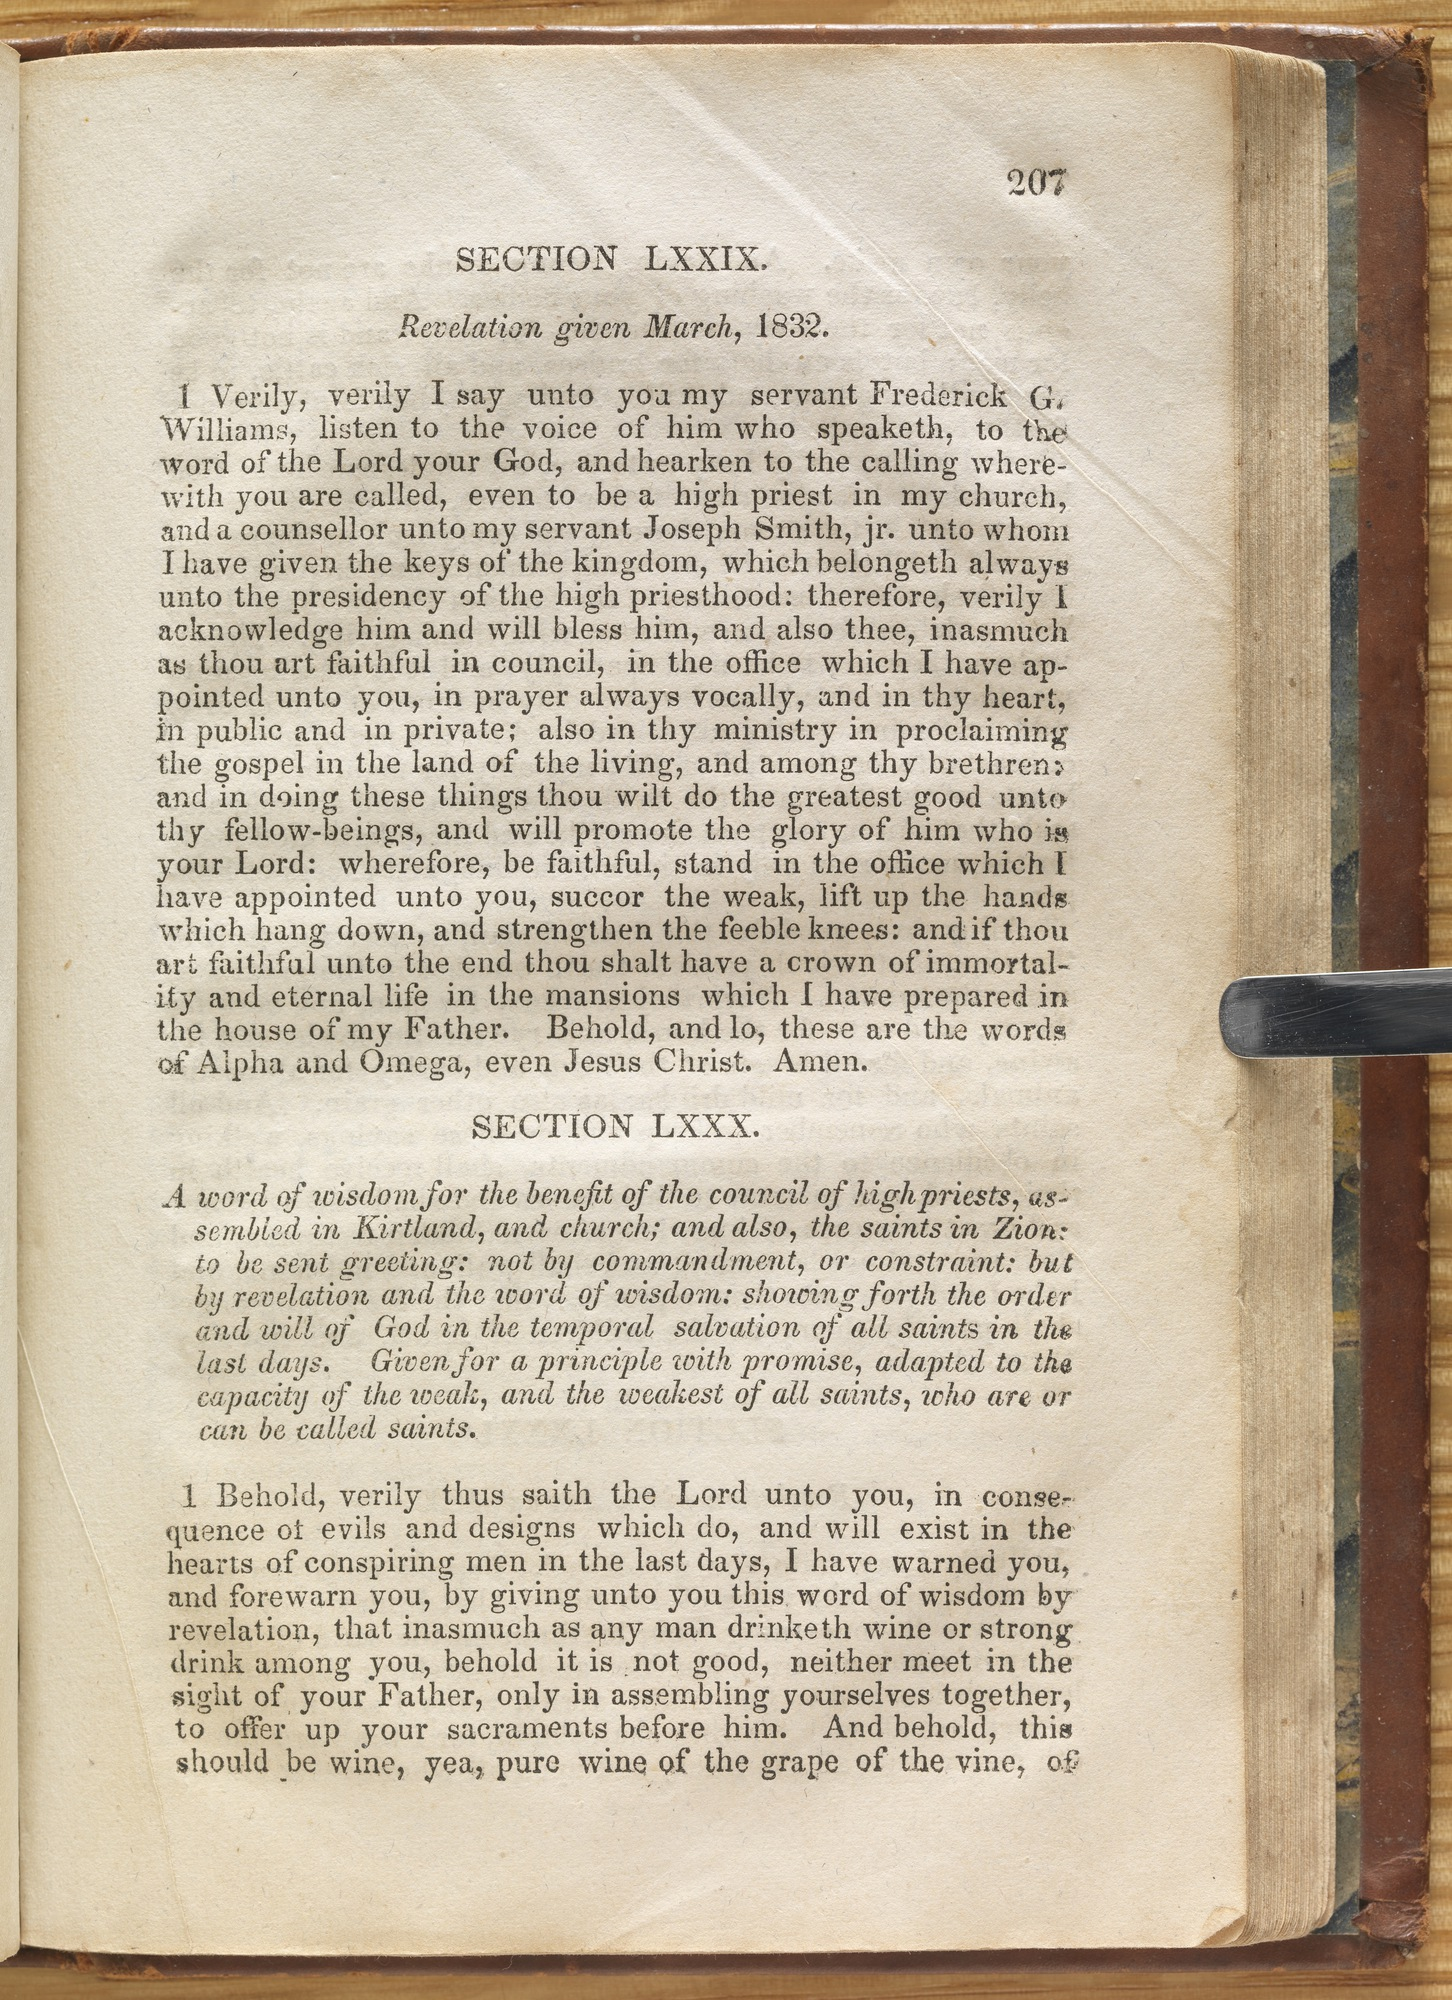 Doctrine and Covenants, 1835